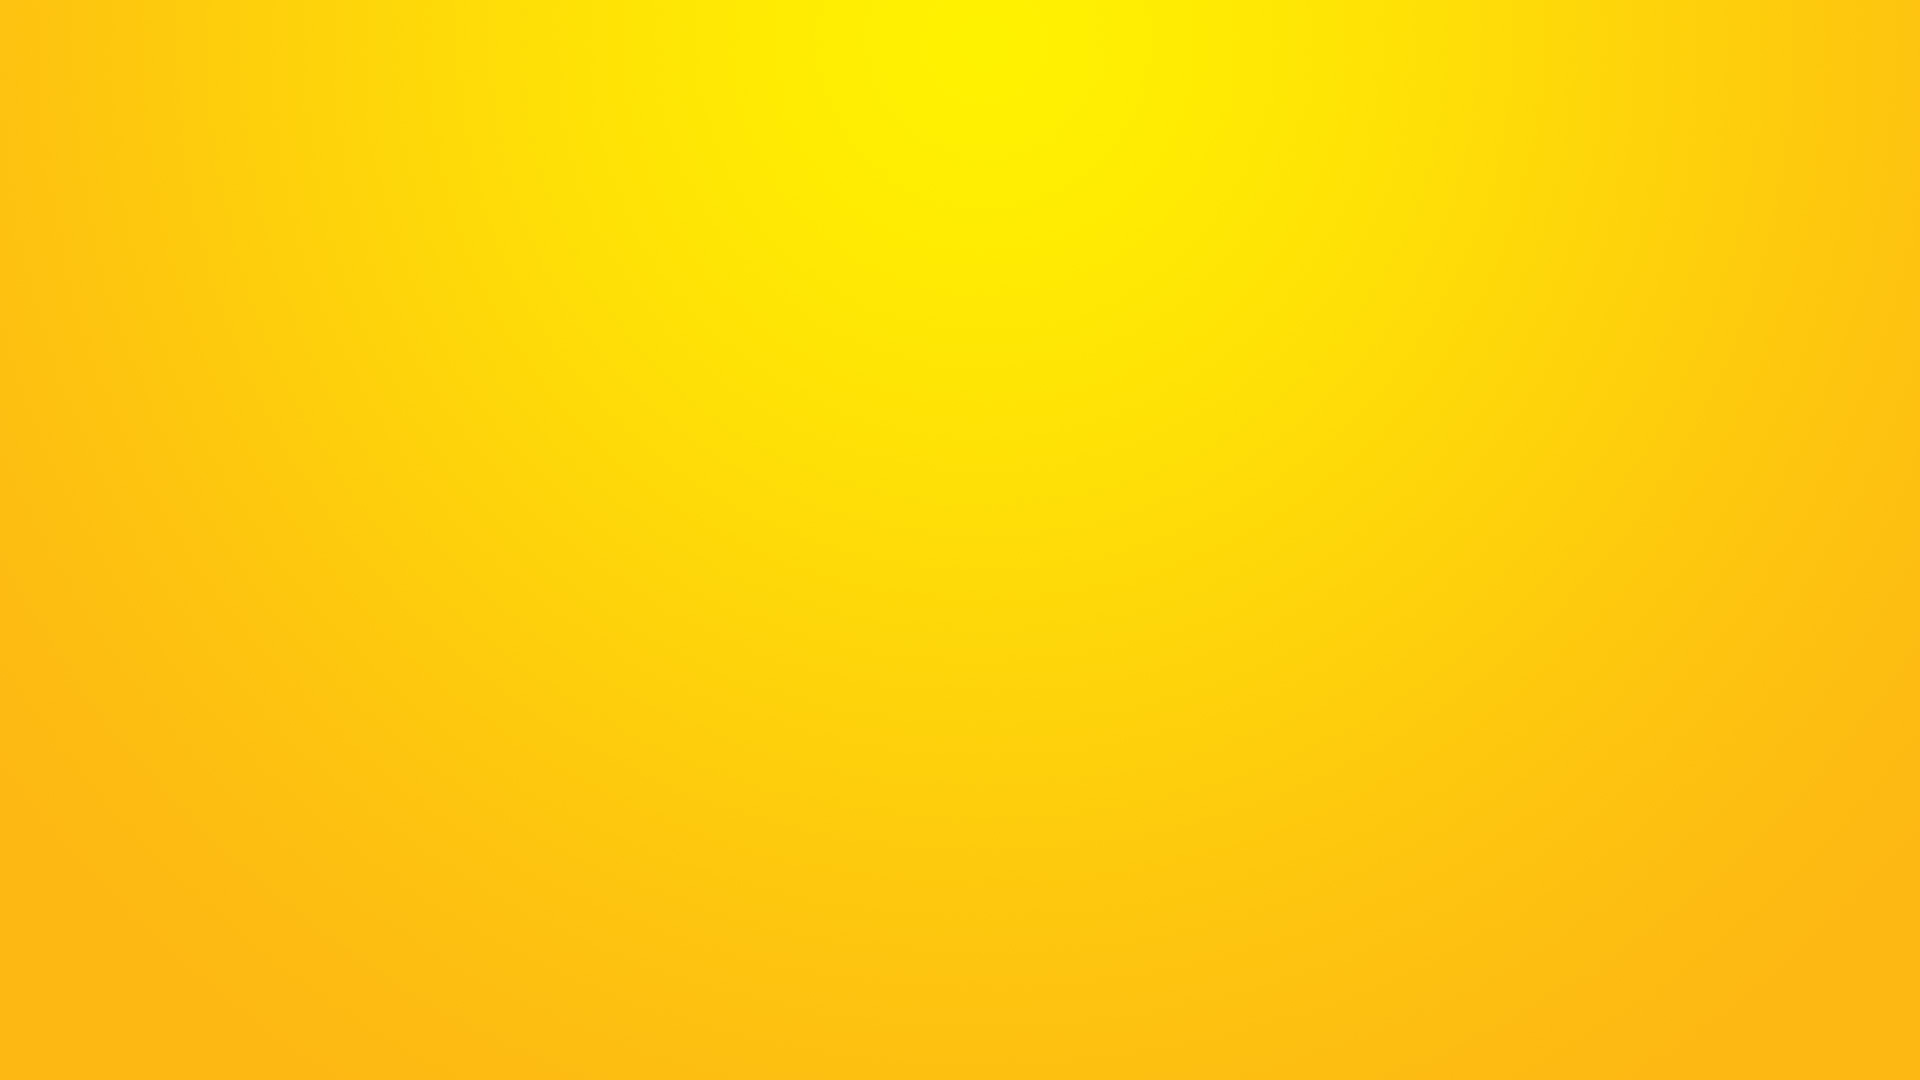 yellow-Gradient-Background